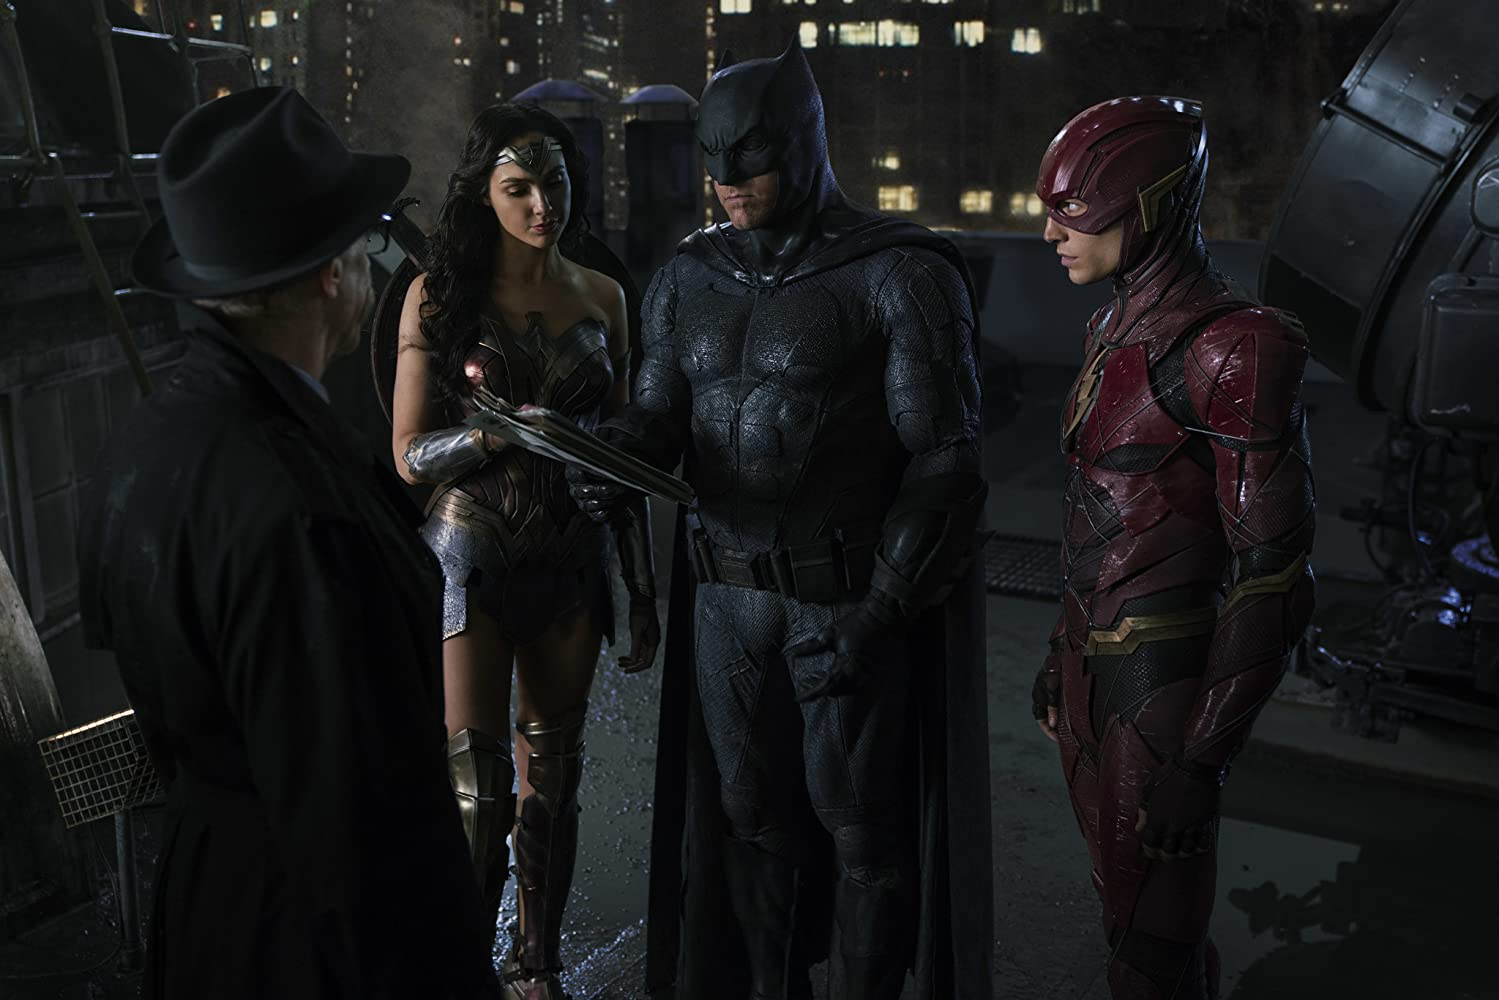 Ben Affleck, J.K. Simmons, Gal Gadot, and Ezra Miller in Justice League (2017)